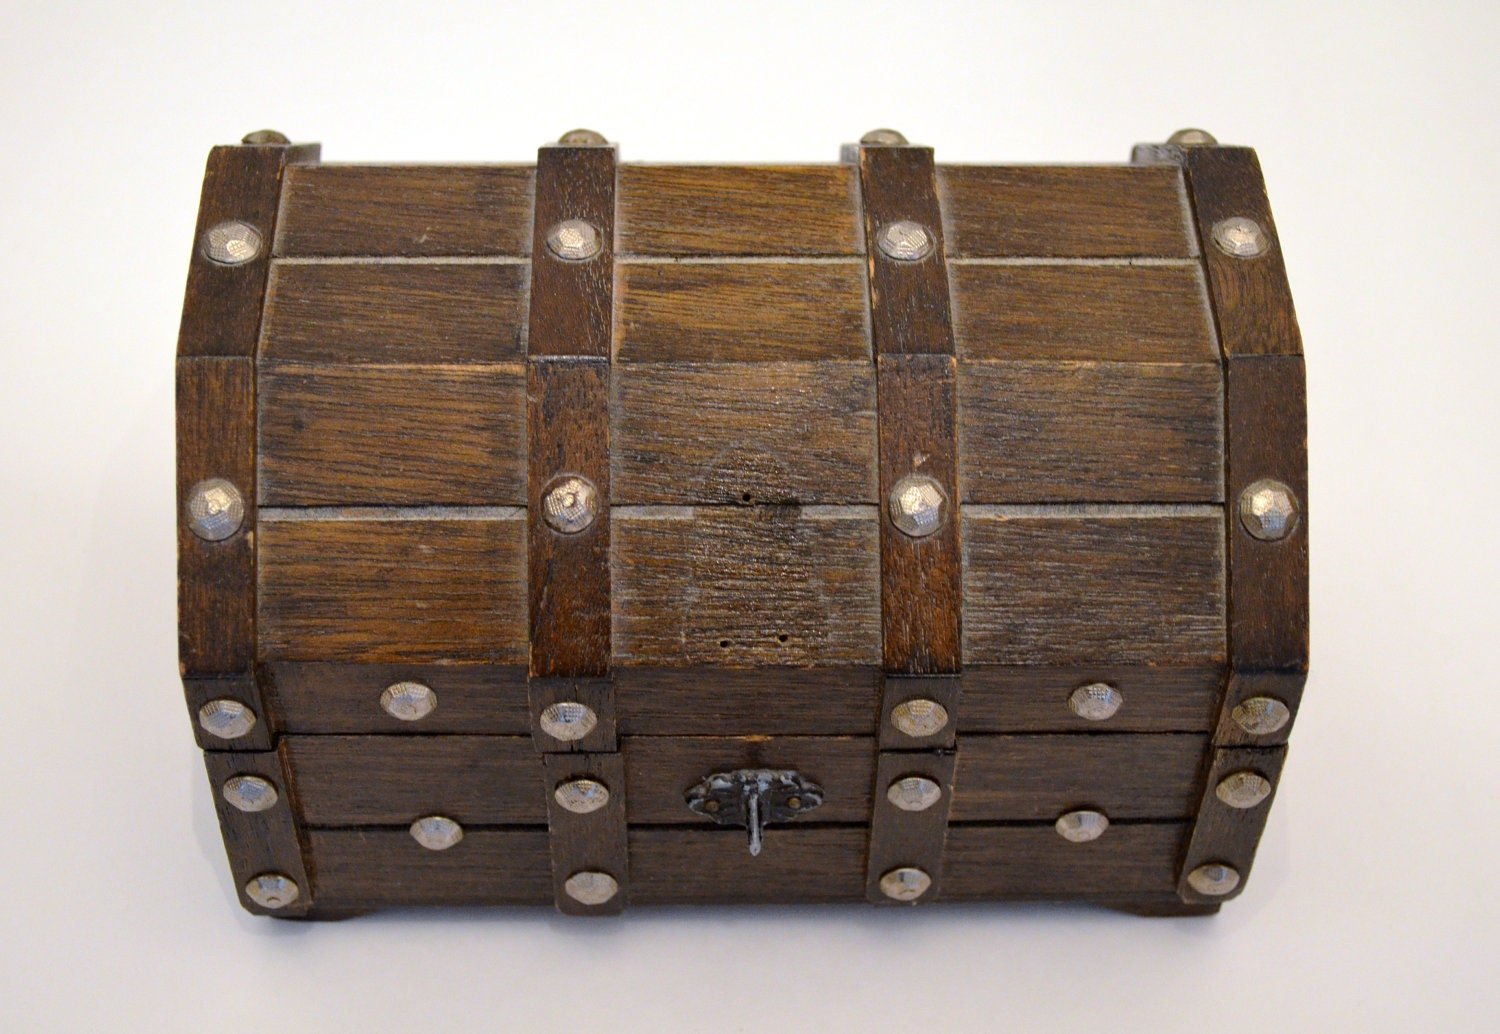 Wooden Vintage Treasure Chest Jewelry Box